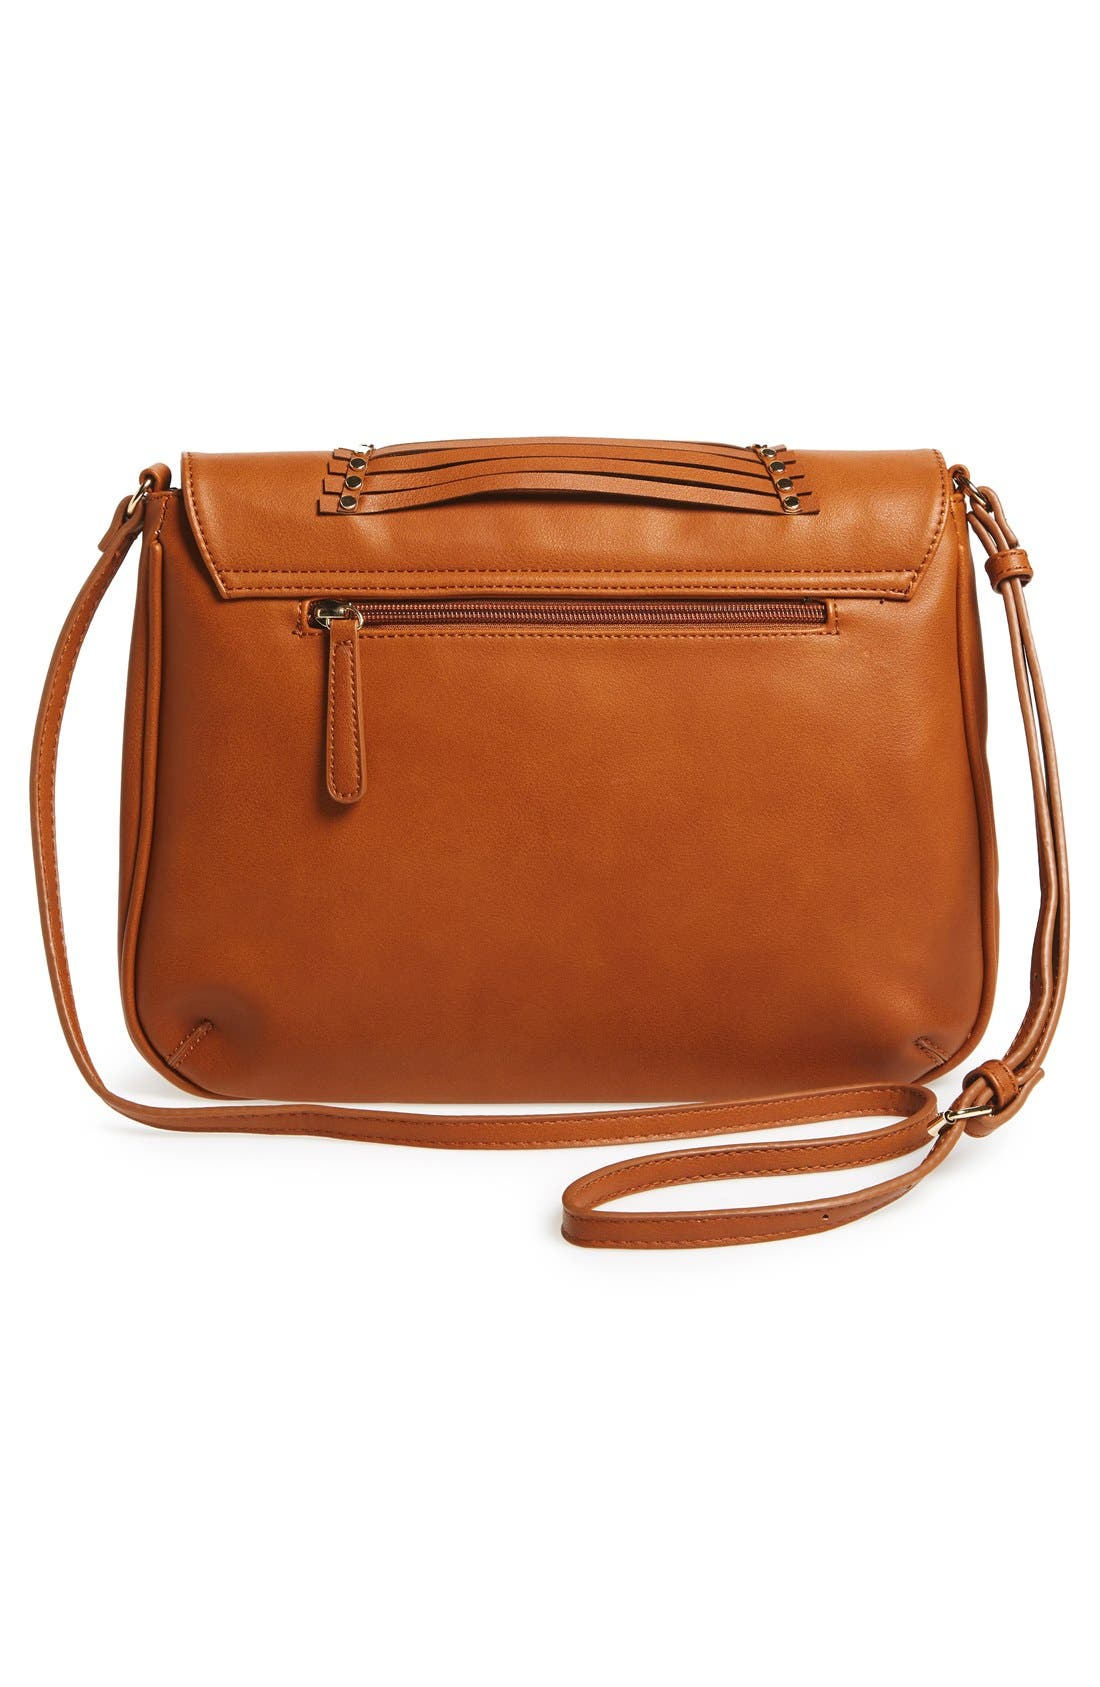 'Larissa' Studded Flap Faux Leather Crossbody Bag,                             Alternate thumbnail 3, color,                             Cognac